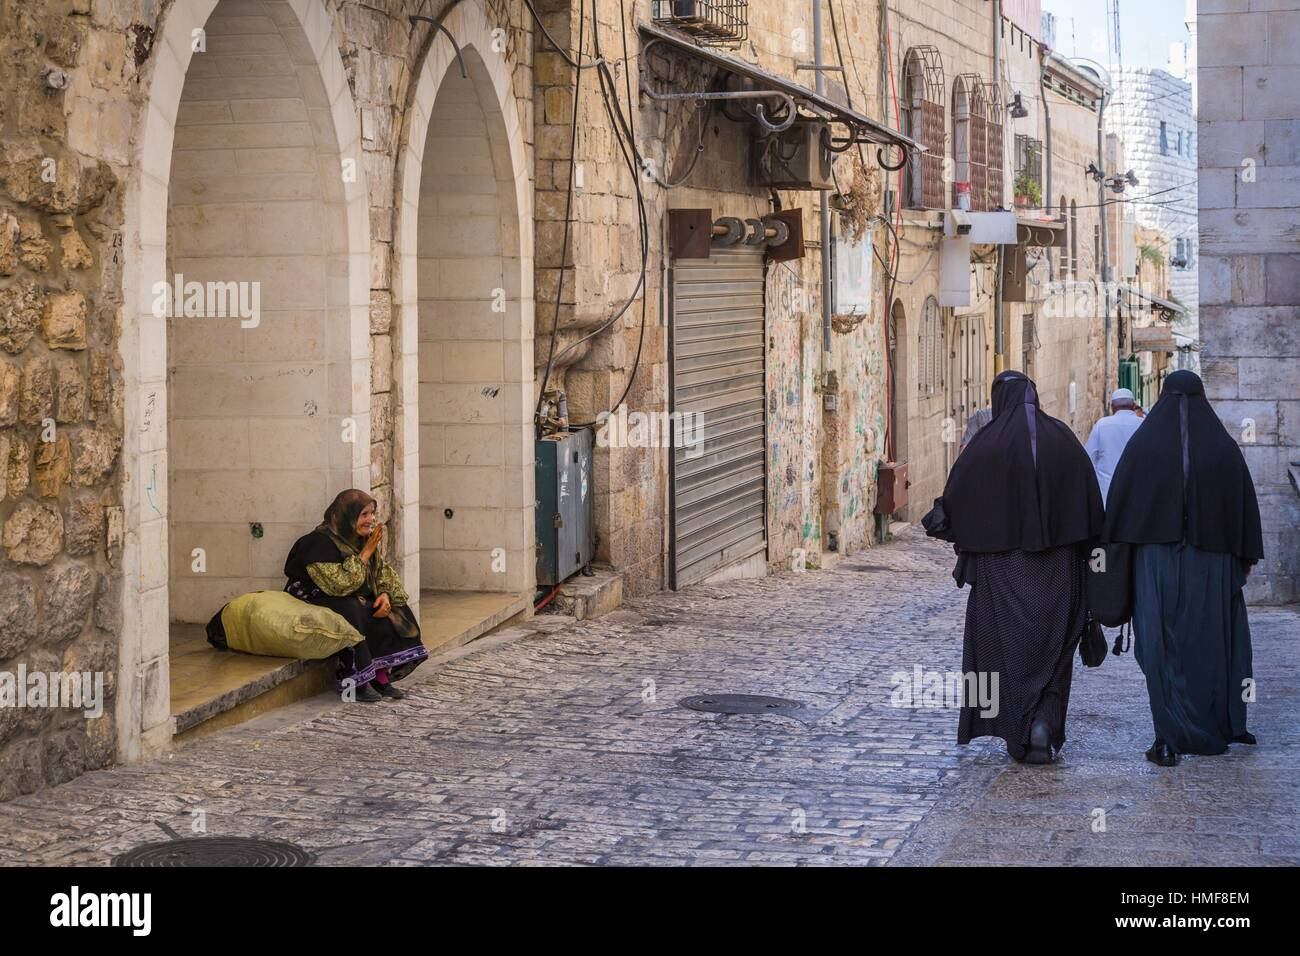 A street view along the Via Dolorosa in Jerusalem, Israel, Middle East. - Stock Image